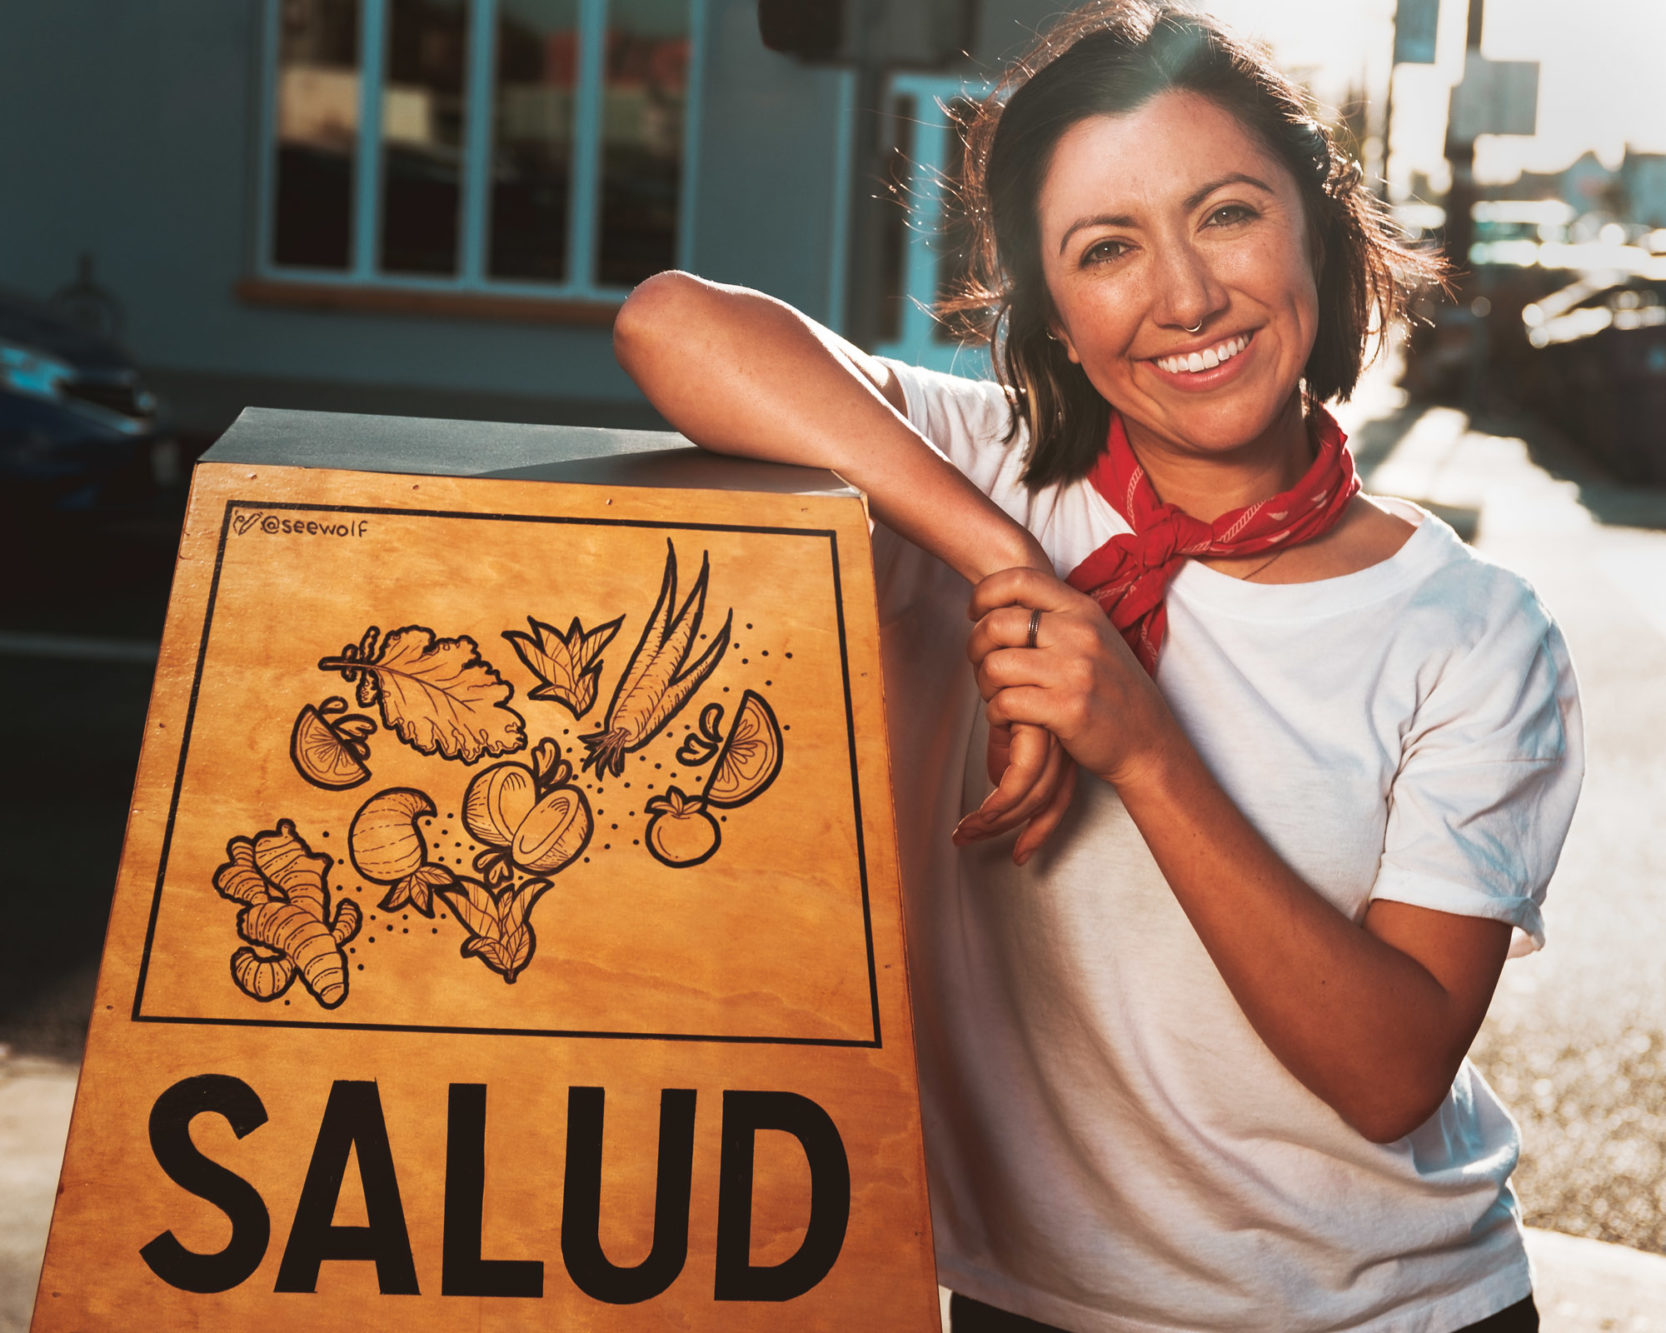 Angela-Almaguer-Salud-Standing-With-Sign